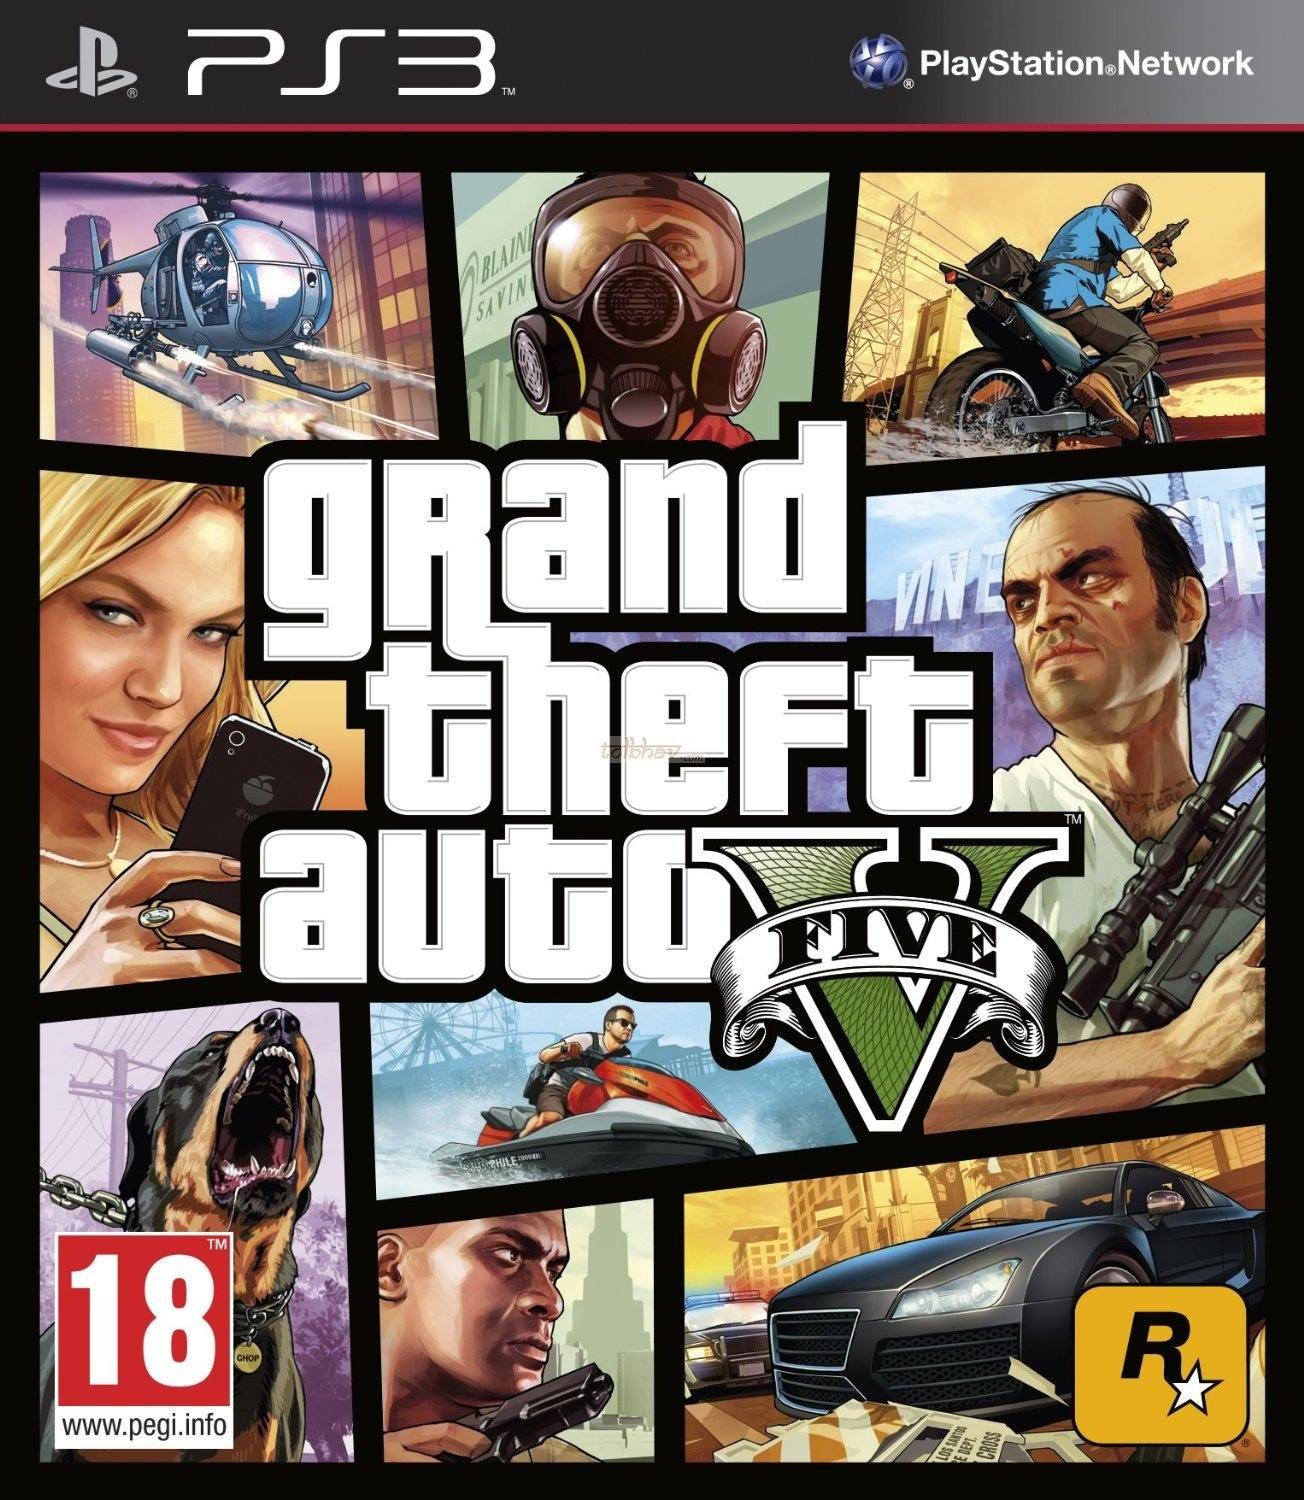 Grand Theft Auto V (PS3) product image